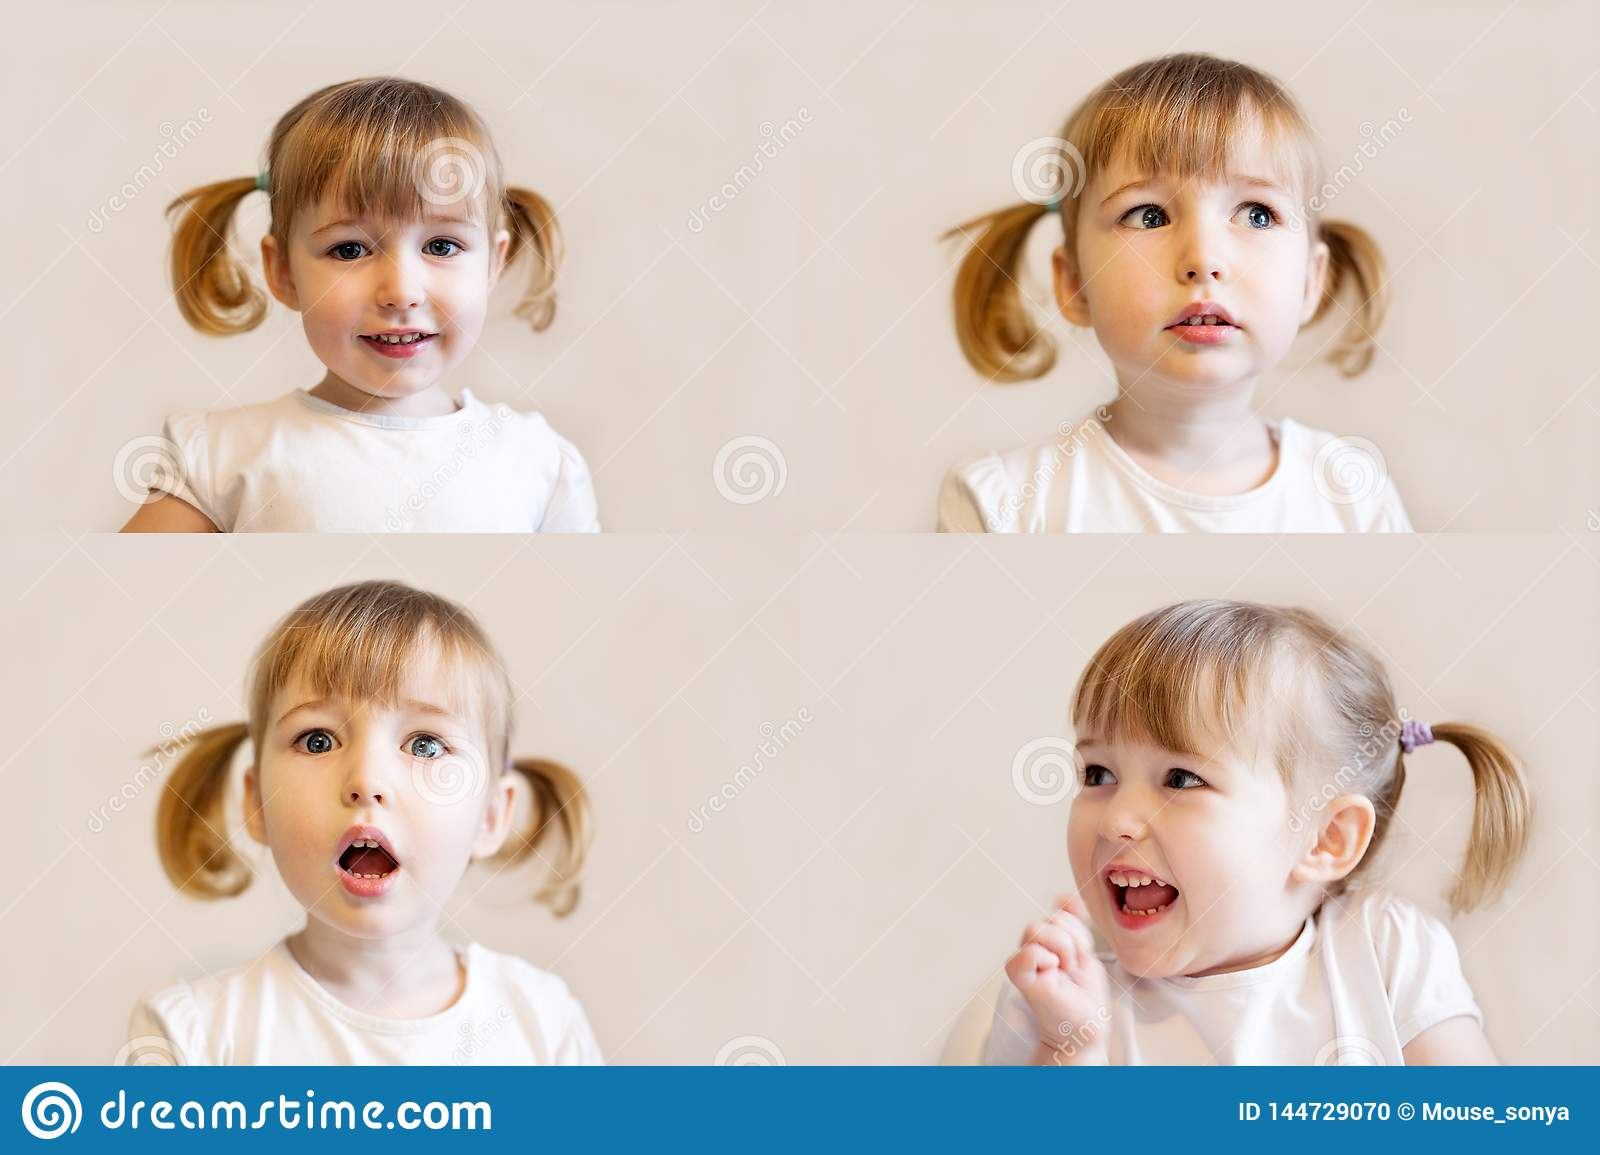 Collage of photos with sly kid girl with pigtails hair closeup face emotional portraits